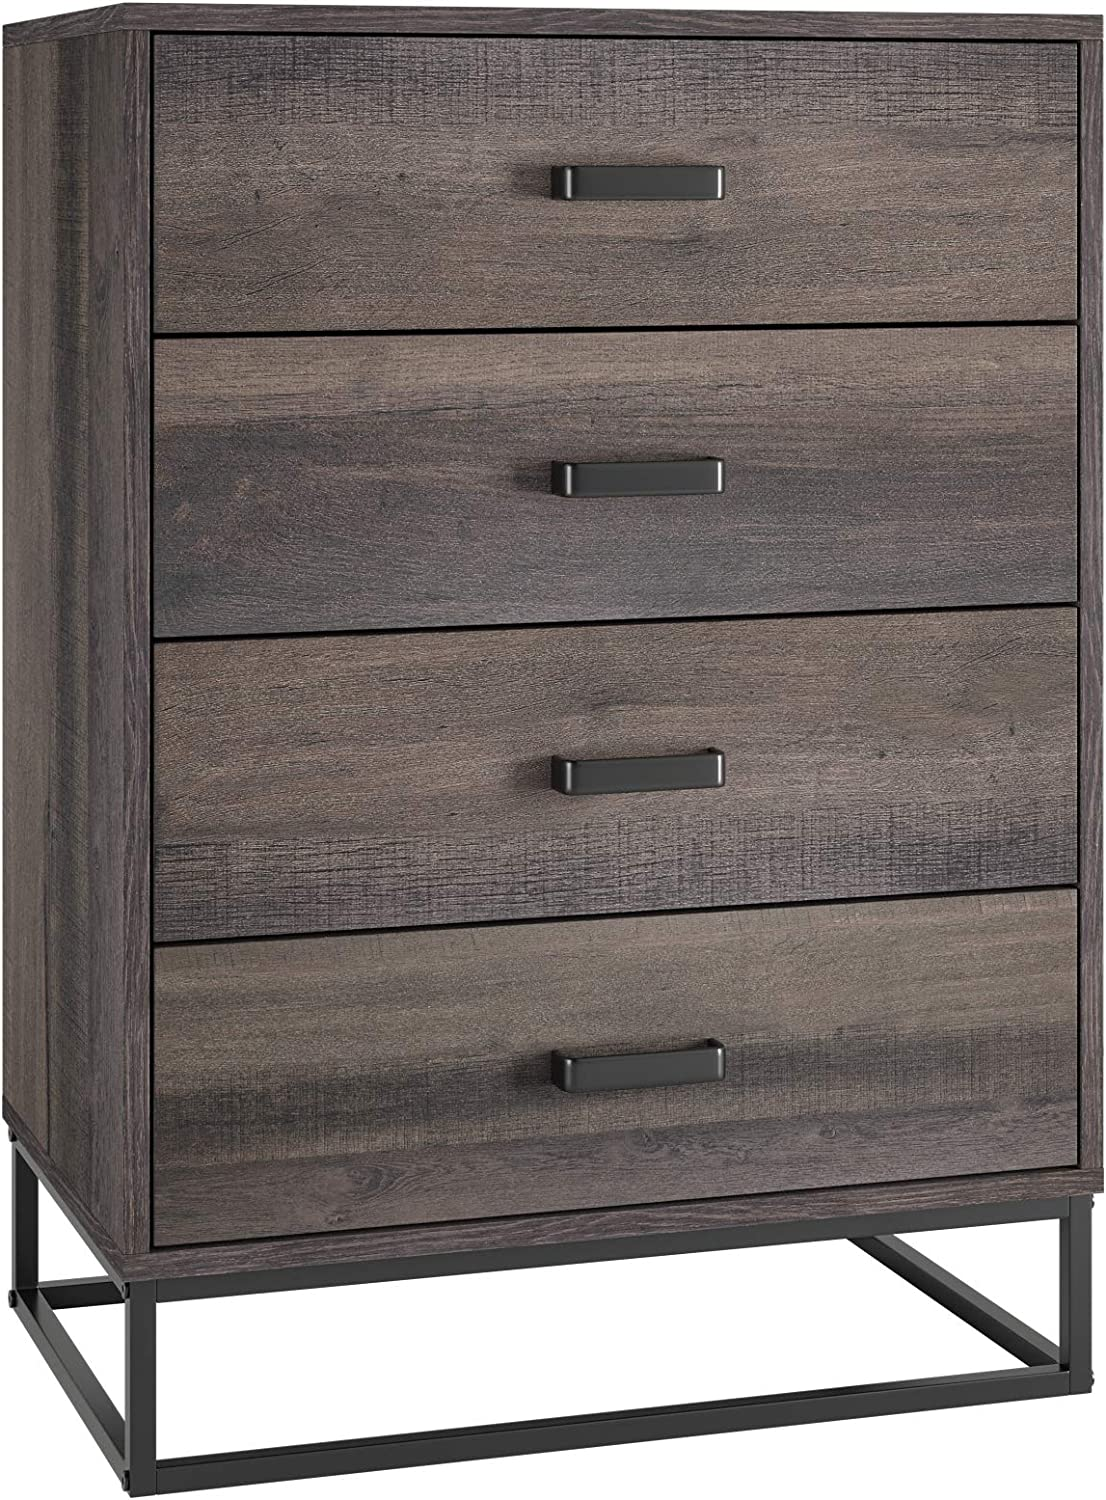 HOMECHO 4 Drawer Dresser, Wide Chest of Drawers, Wood Storage Organizer Unit Floor Cabinet with Sturdy Metal Frame for Home Office (Brown)